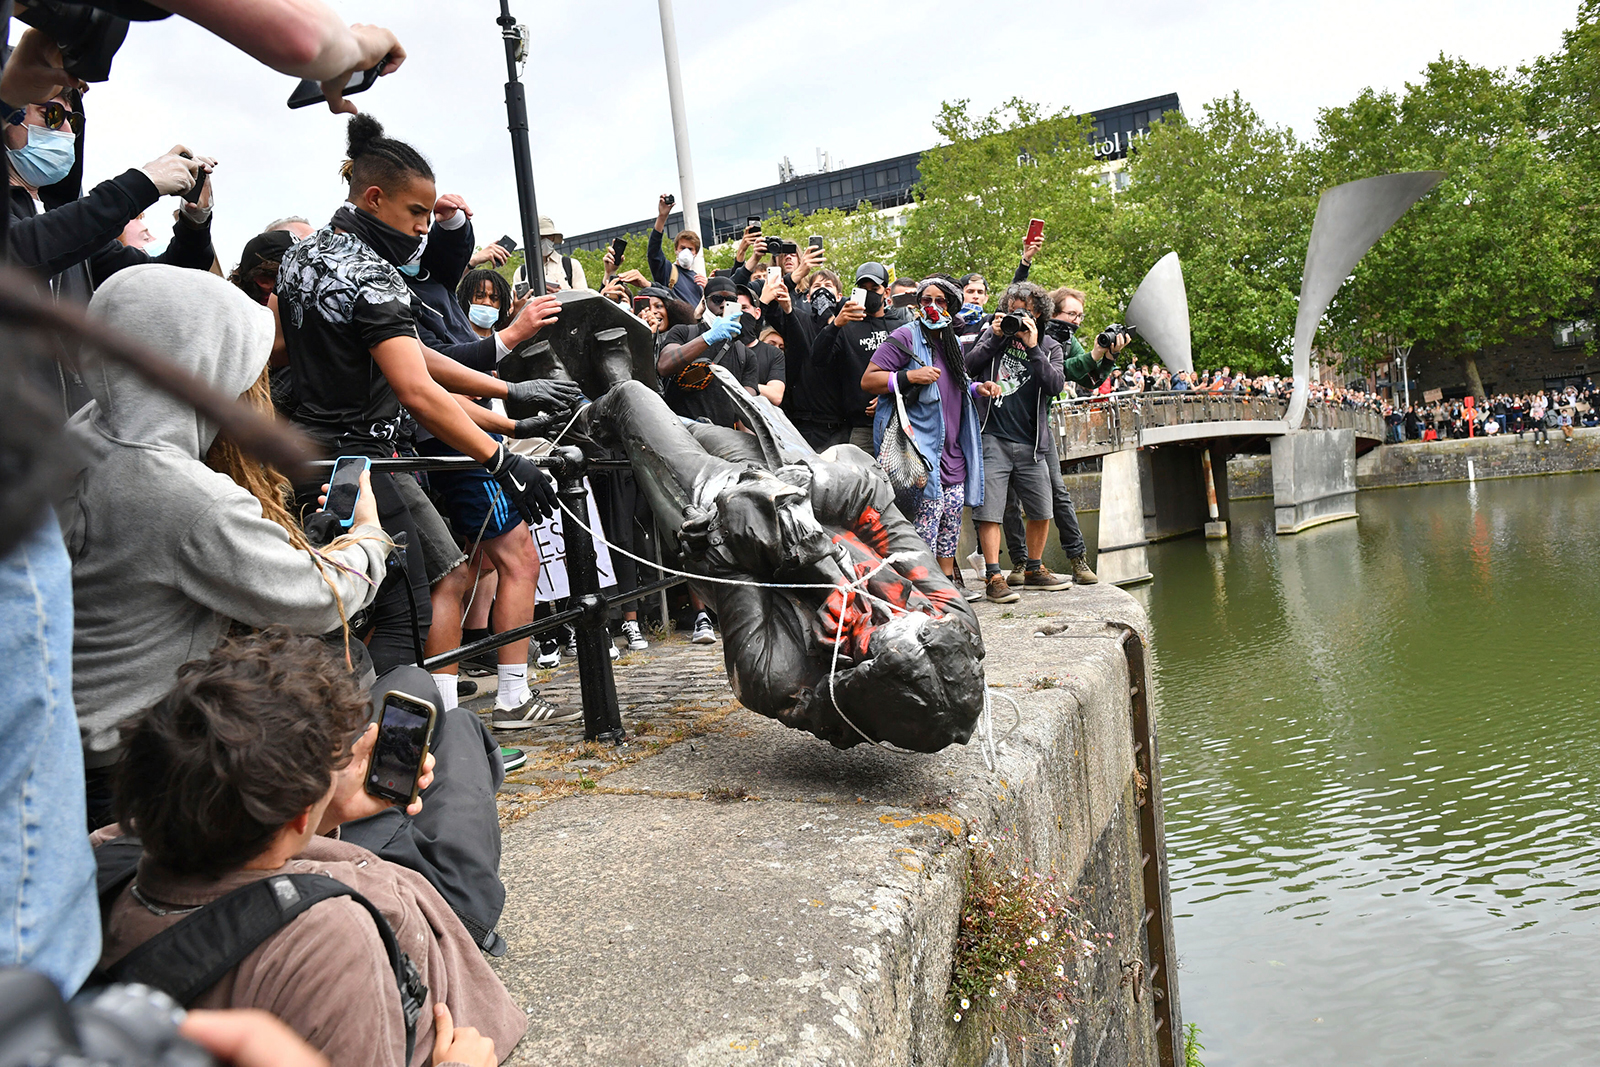 Protesters throw a statue of slave trader Edward Colston into Bristol harbor, during a Black Lives Matter protest rally, in Bristol, England, on June 7.